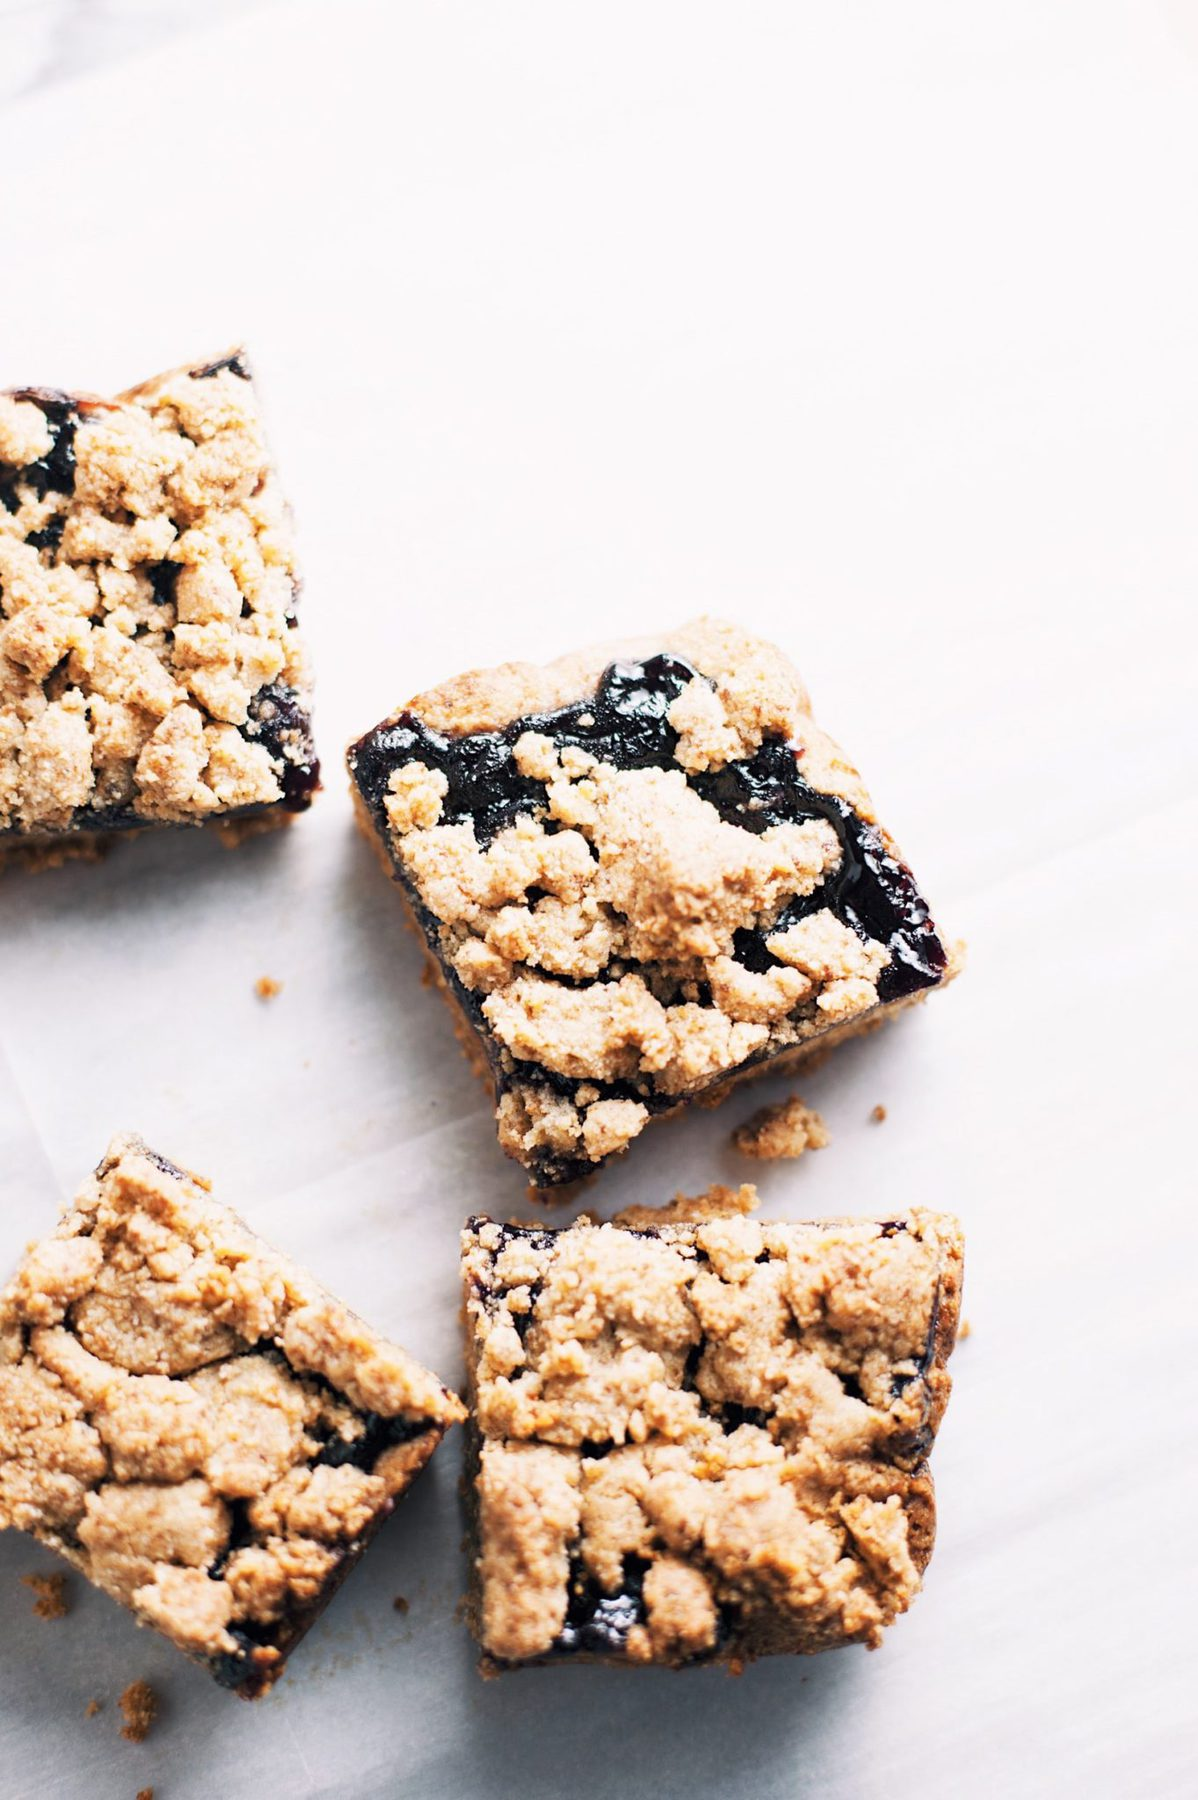 blueberry crumble bars on parchment paper